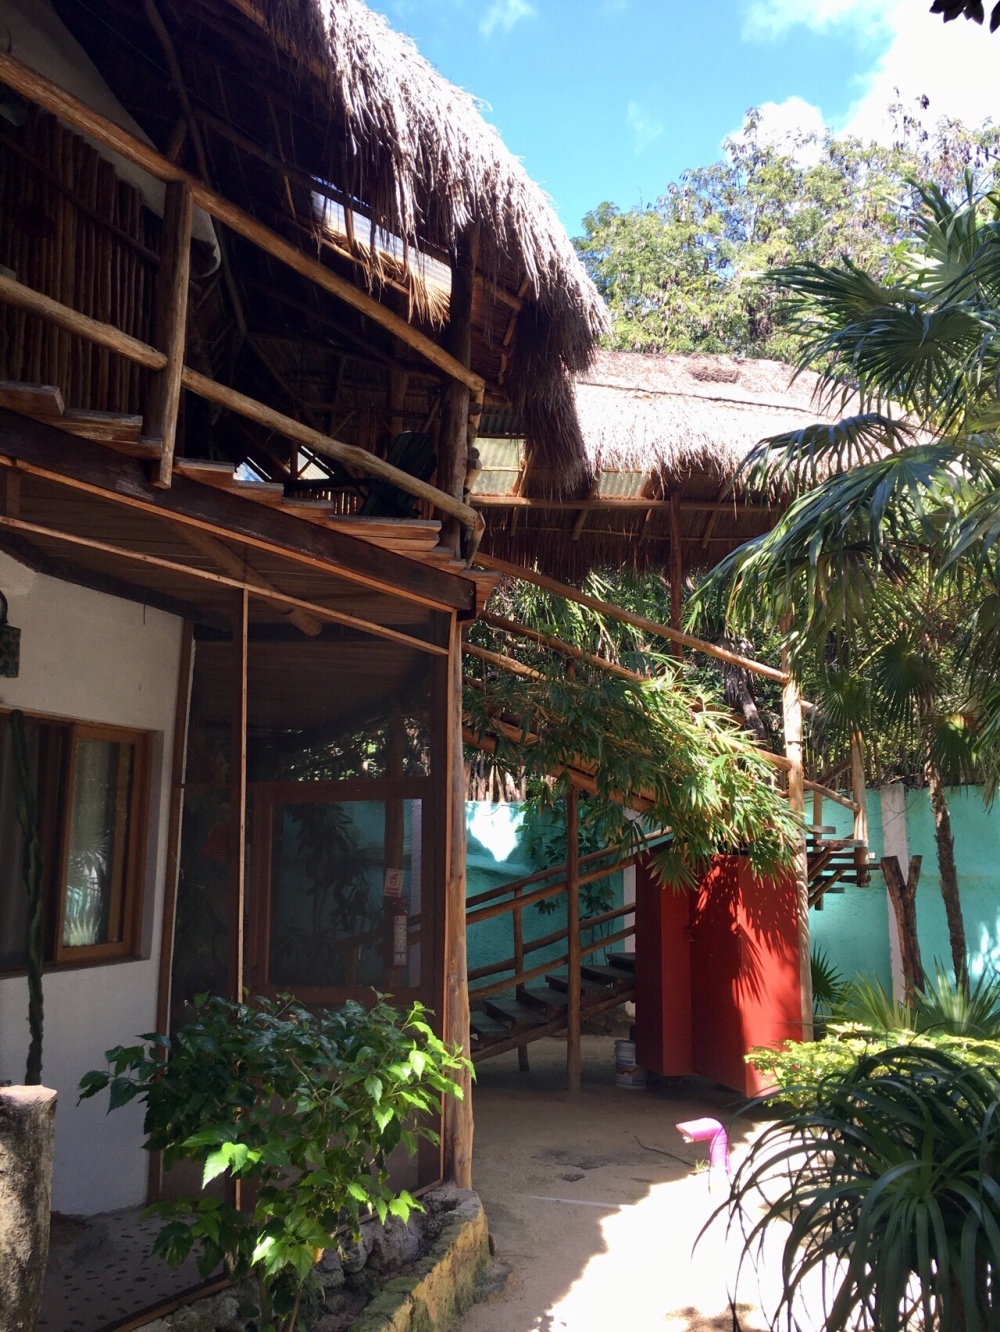 Hostel in Tulum